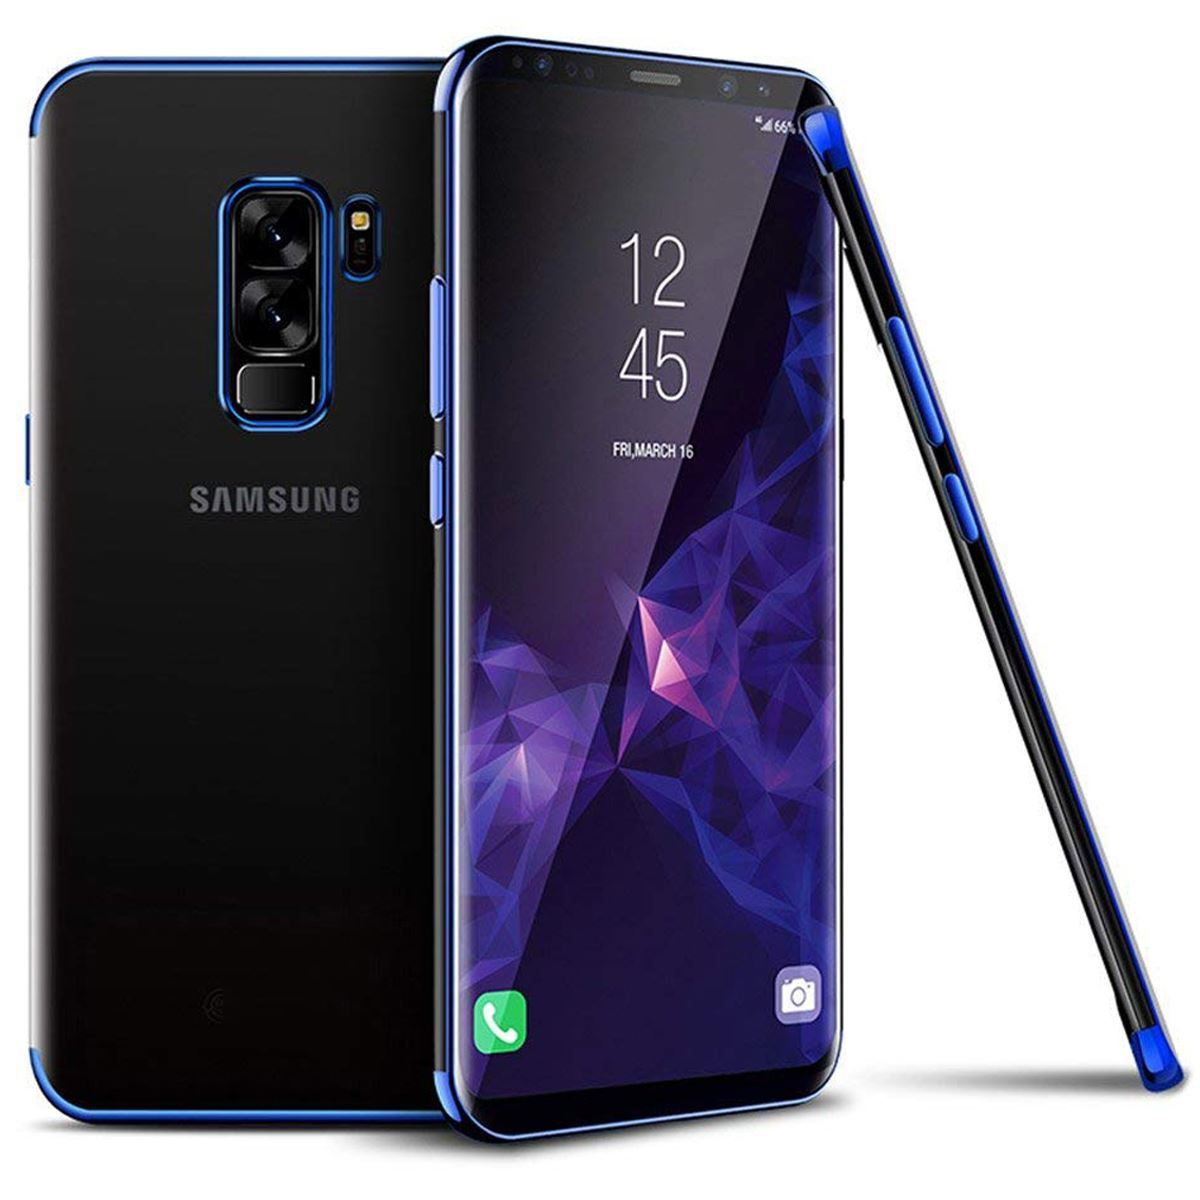 Samsung Galaxy Note 8 Case Silicone Gel Clear Cover - Blue